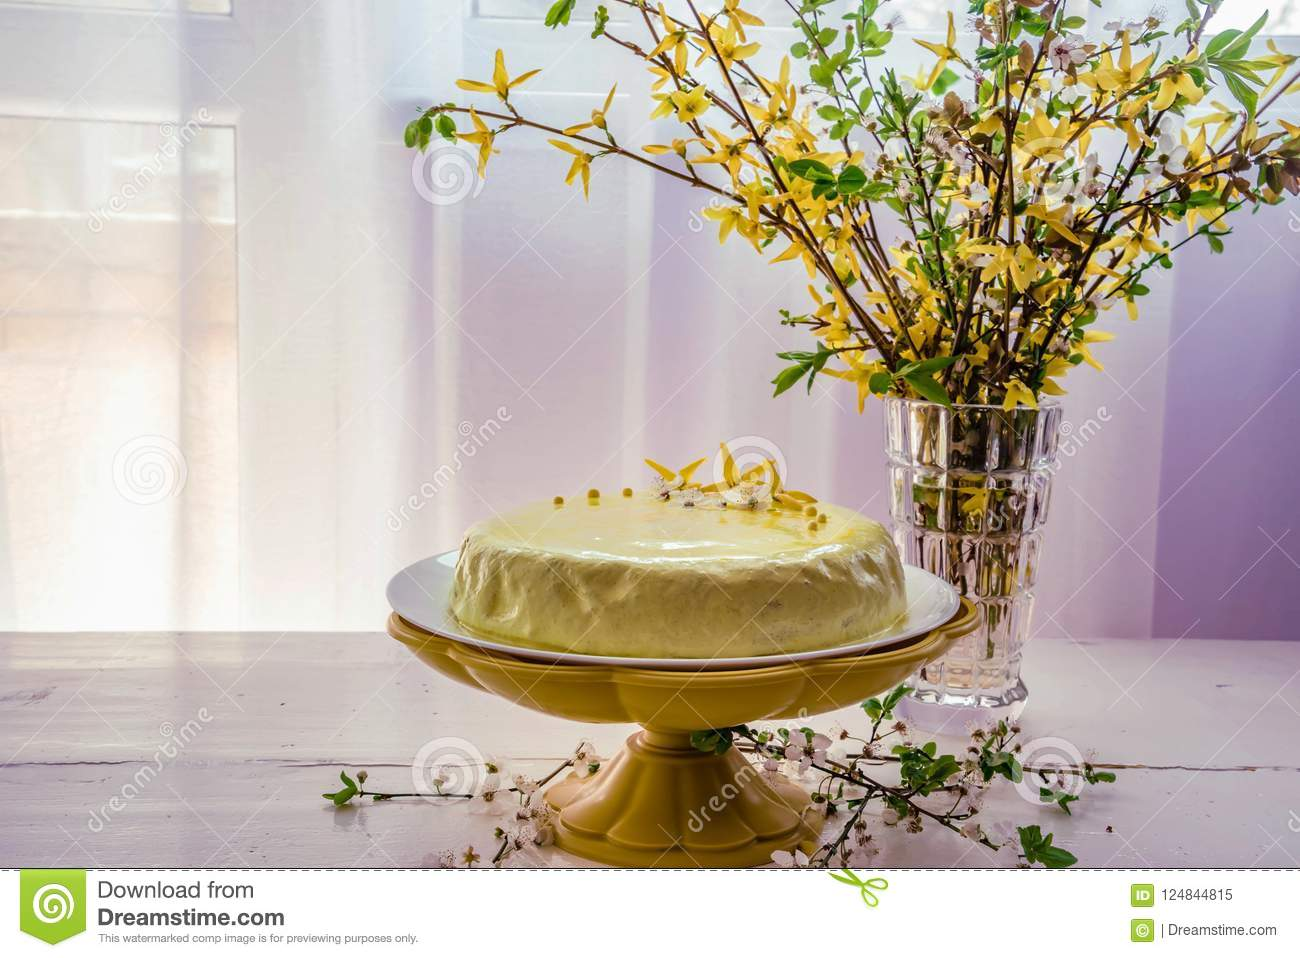 Excellent A Cake With Lemon And Coconut On A Yellow Tray And A Bouquet Of Funny Birthday Cards Online Alyptdamsfinfo